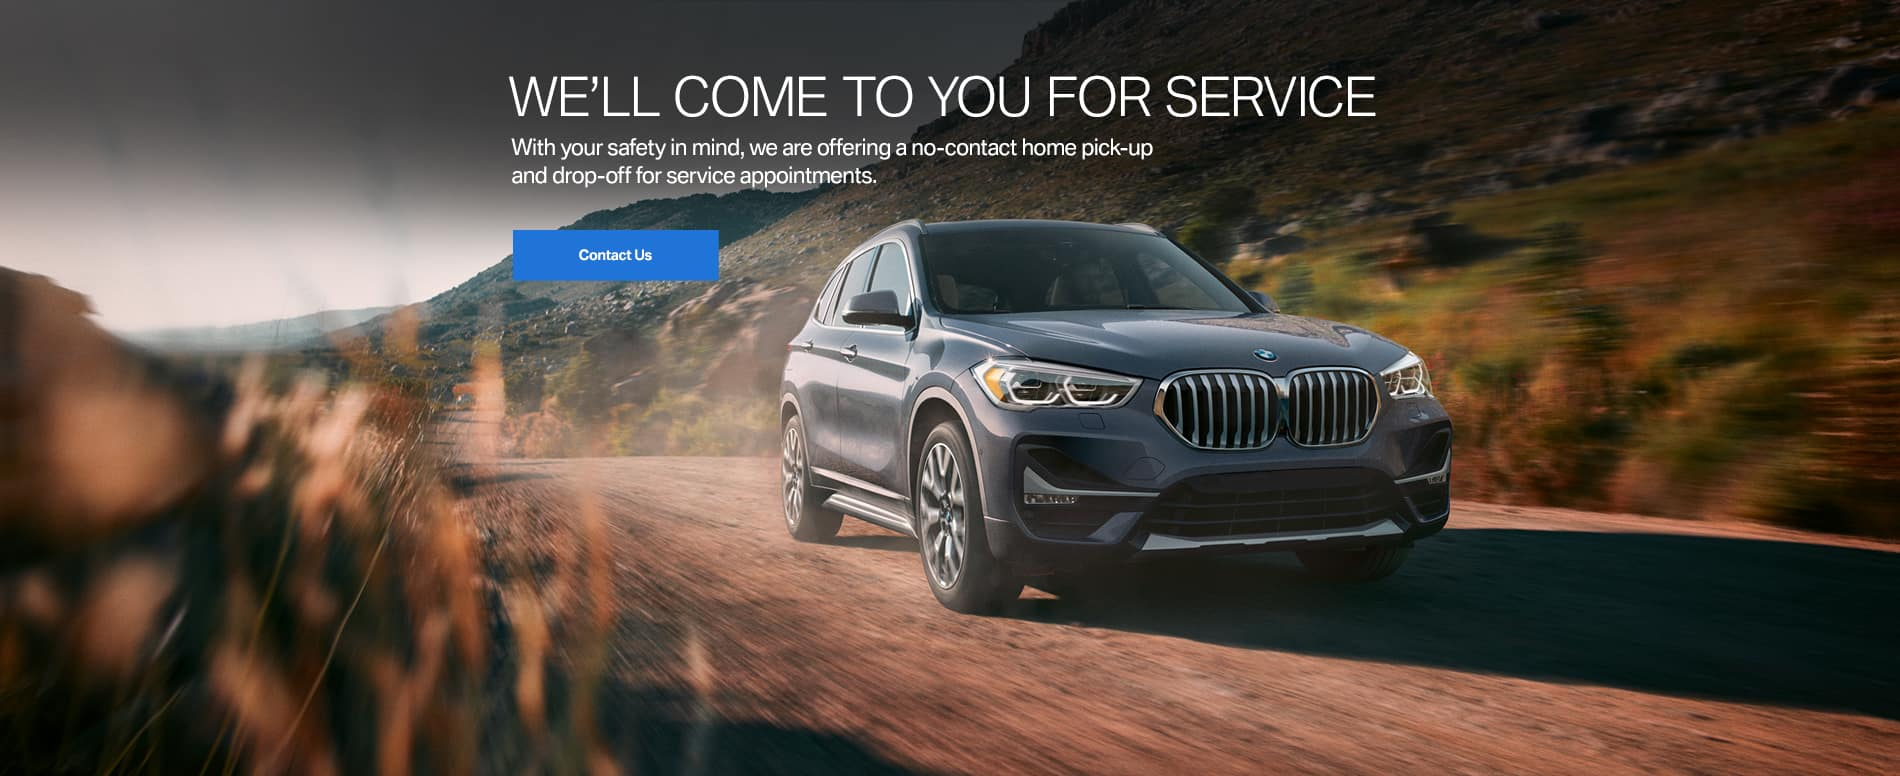 We'll Come To You For Service - Bert Ogden BMW in McAllen, Texas